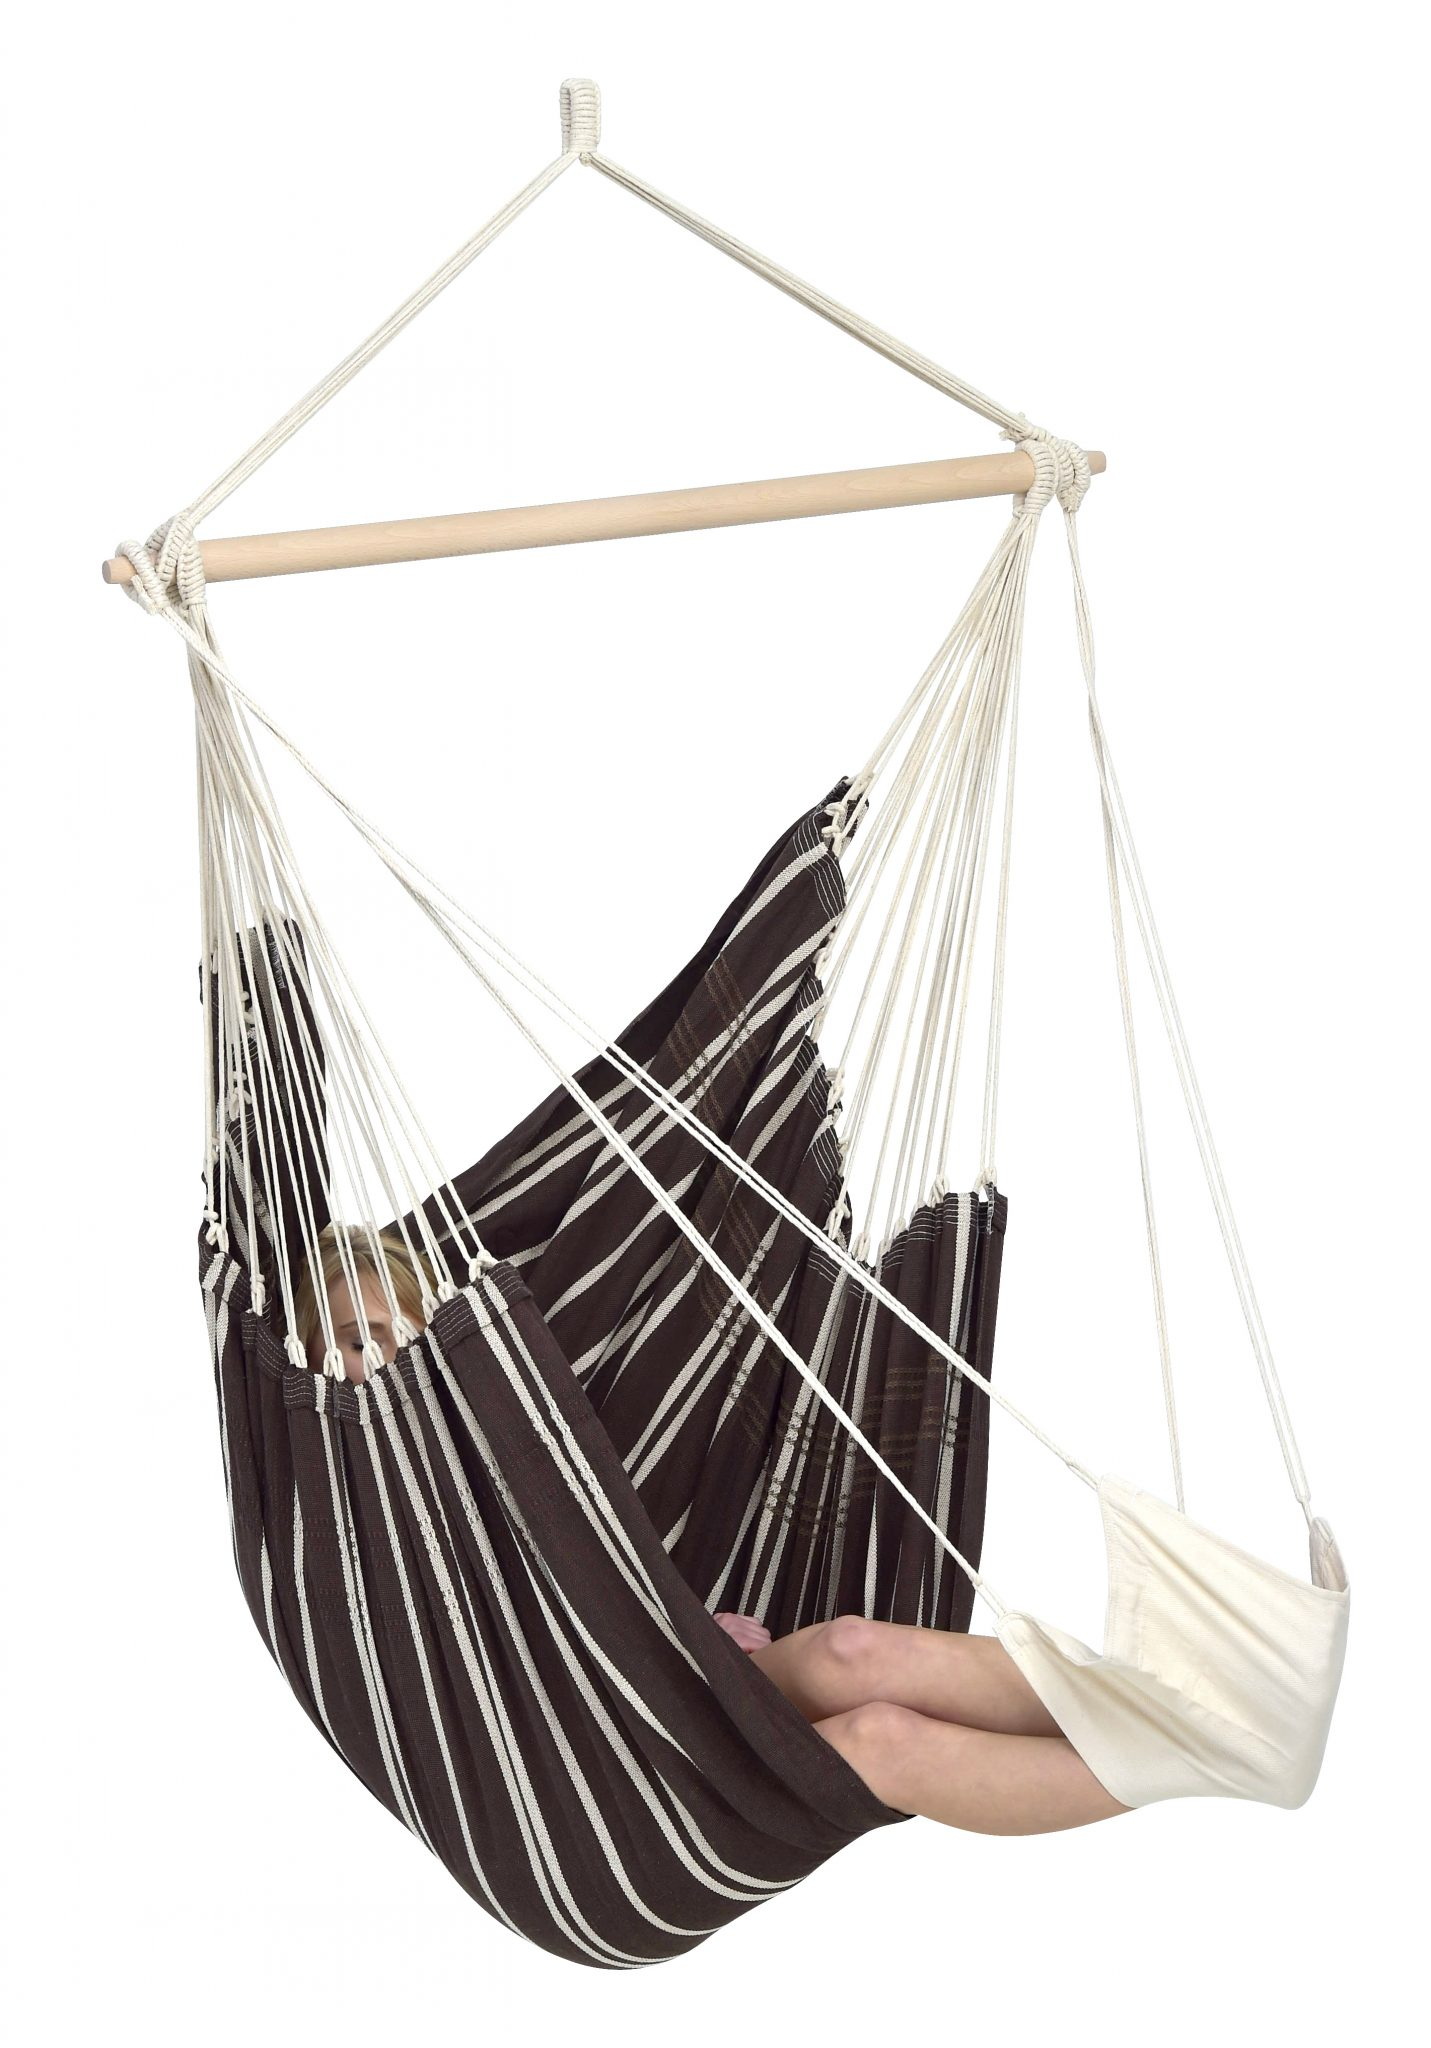 review and comparisons- best indoor hammock chairs